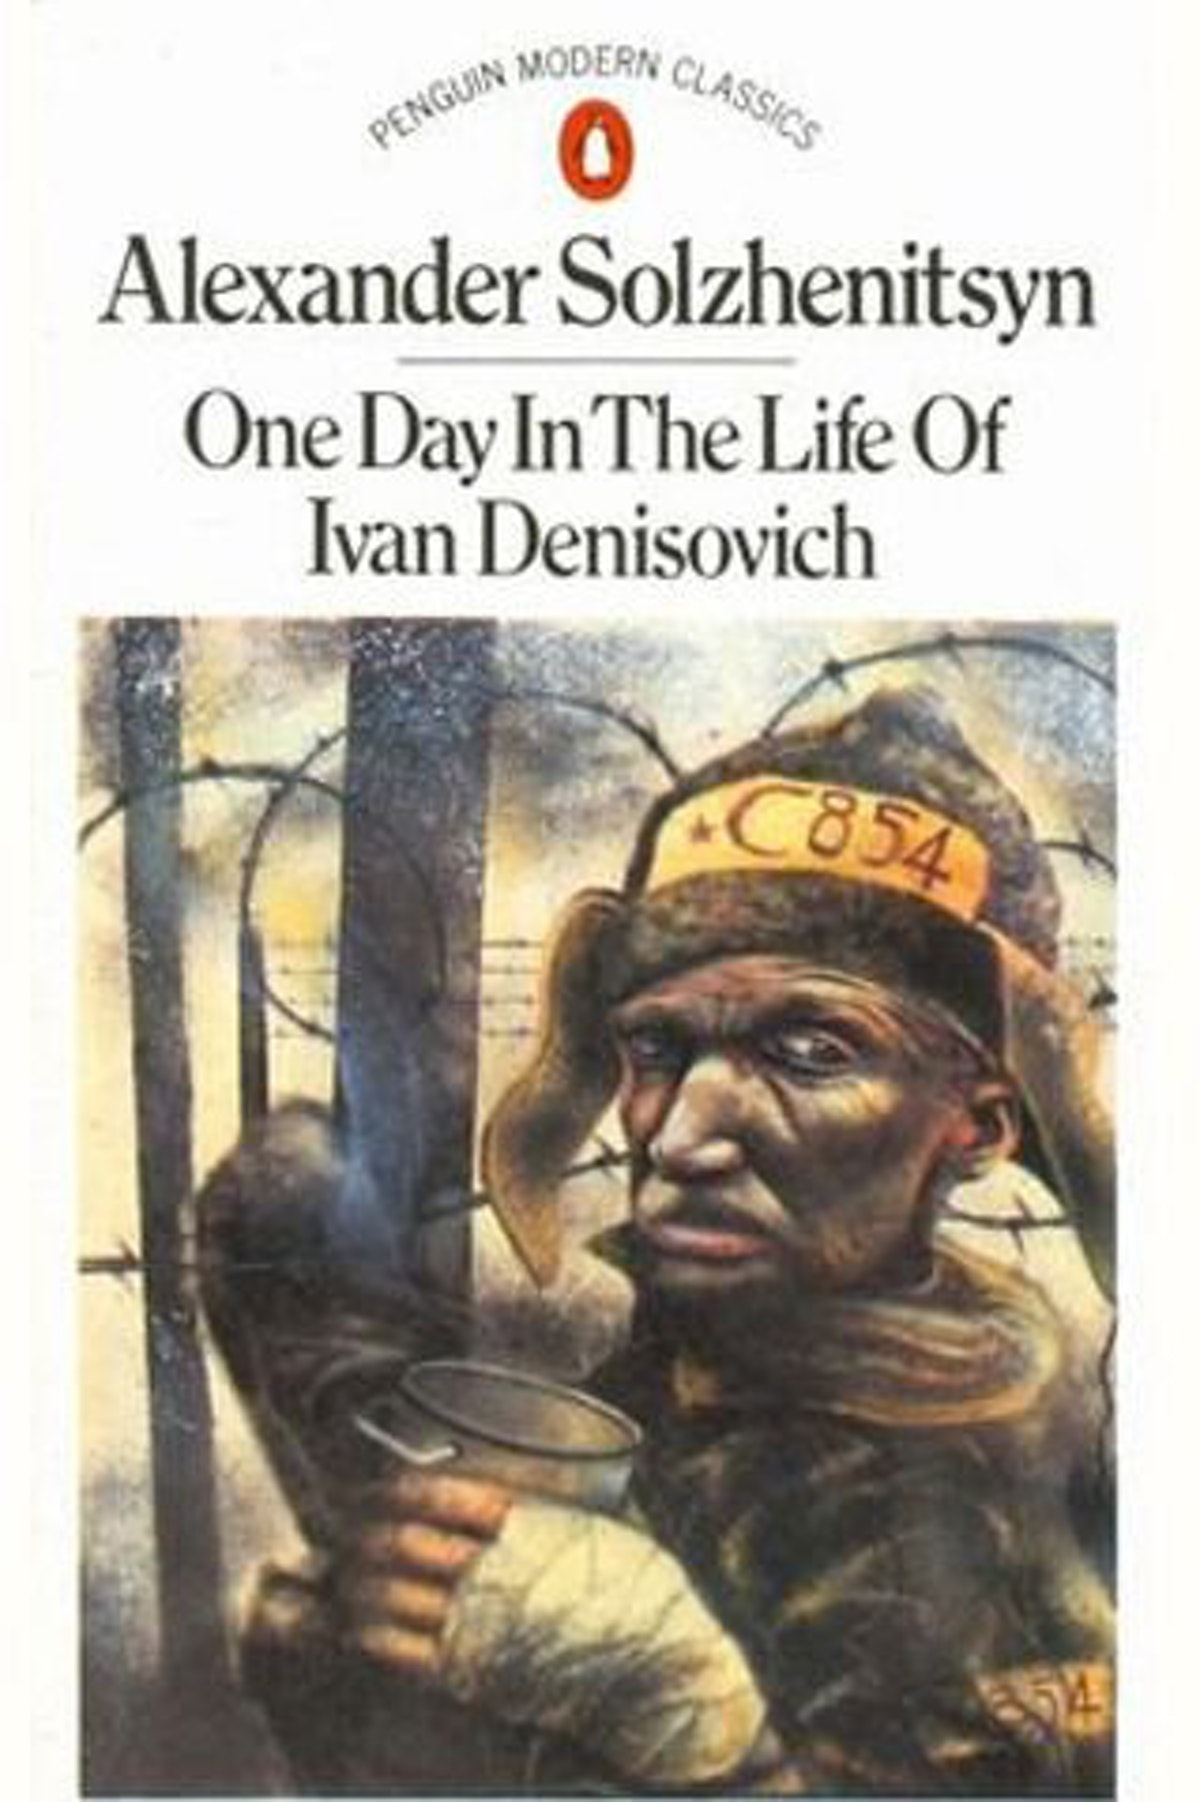 an analysis of a day in the life by ivan denisovich One day in the life of ivan denisovich: one day in the life of ivan denisovich, short novel by aleksandr solzhenitsyn, published in russian in 1962 as odin den ivana denisovicha in the soviet literary magazine novy mir and published in book form the following year solzhenitsyn's first.